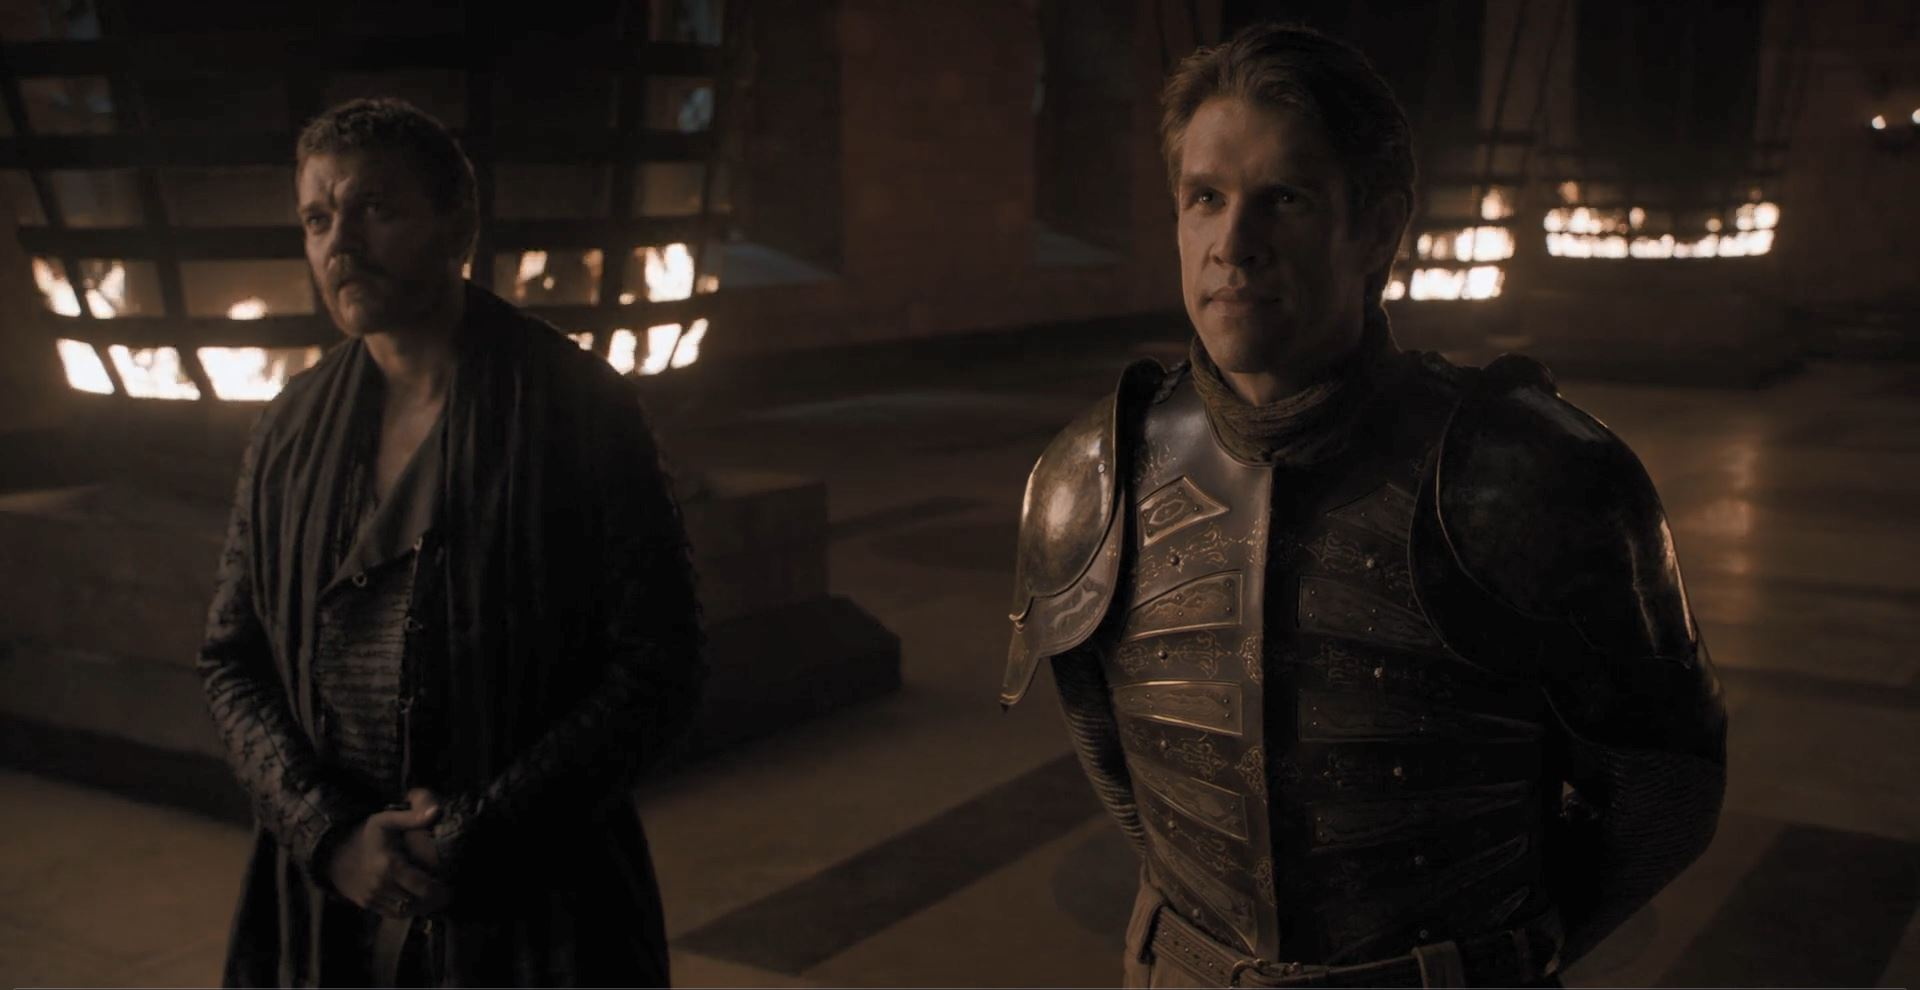 Game of Thrones S08E01 Winterfell Review - Captain Strickland